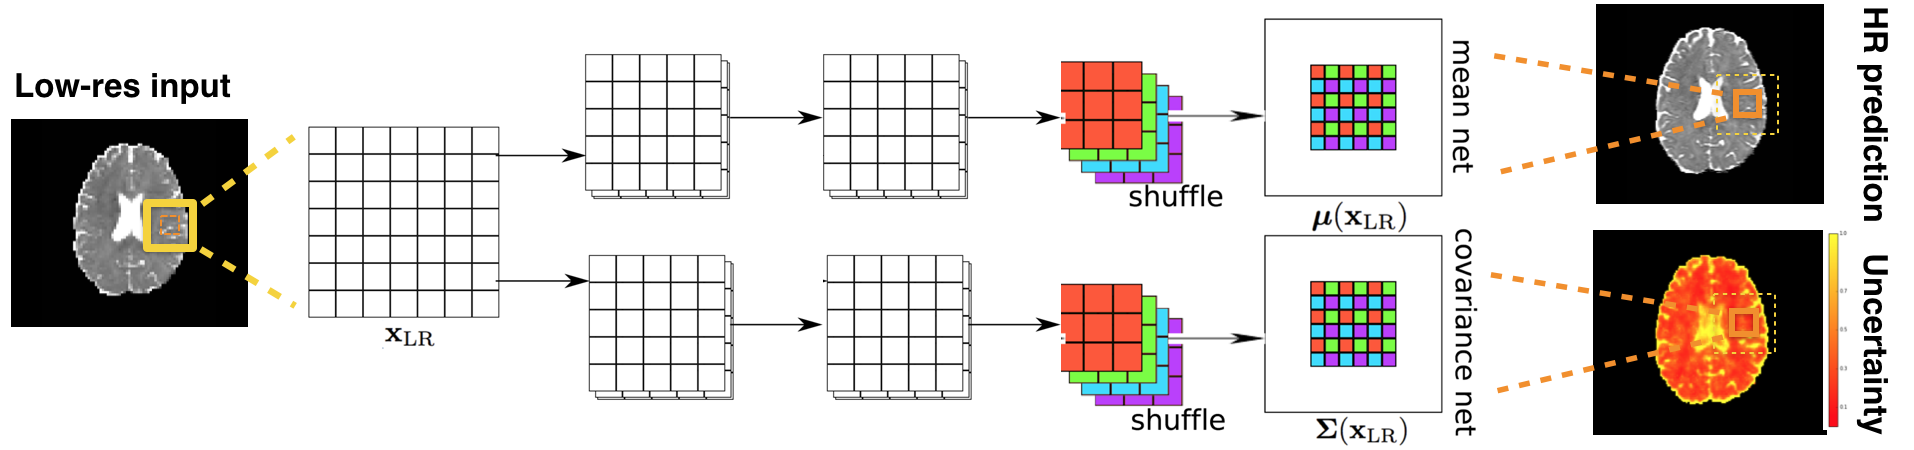 2D illustration of the proposed dual-path architecture which estimates the mean and diagonal covariance of the Gaussian conditional distributions as functions of the input low-resolution subvolume